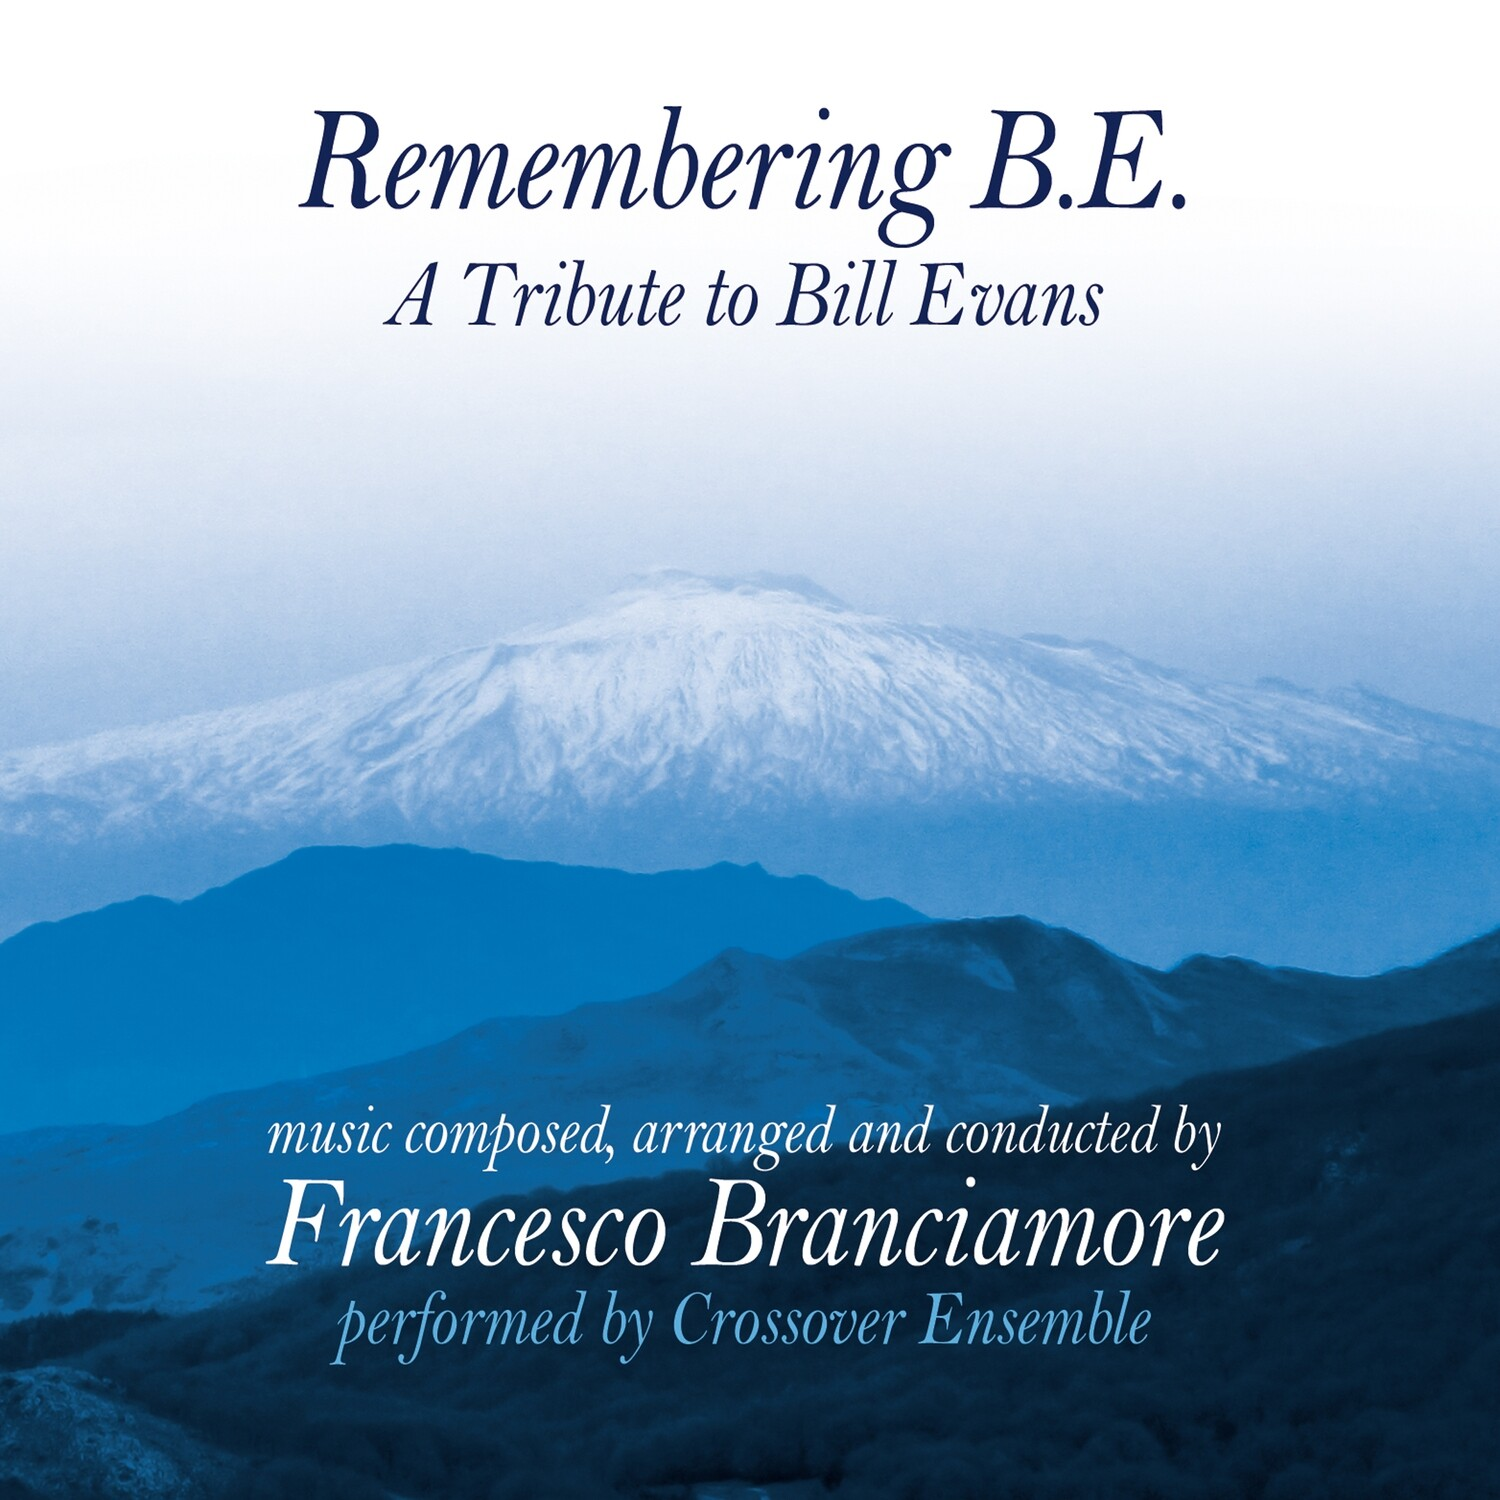 FRANCESCO BRANCIAMORE «Remembering B.E»